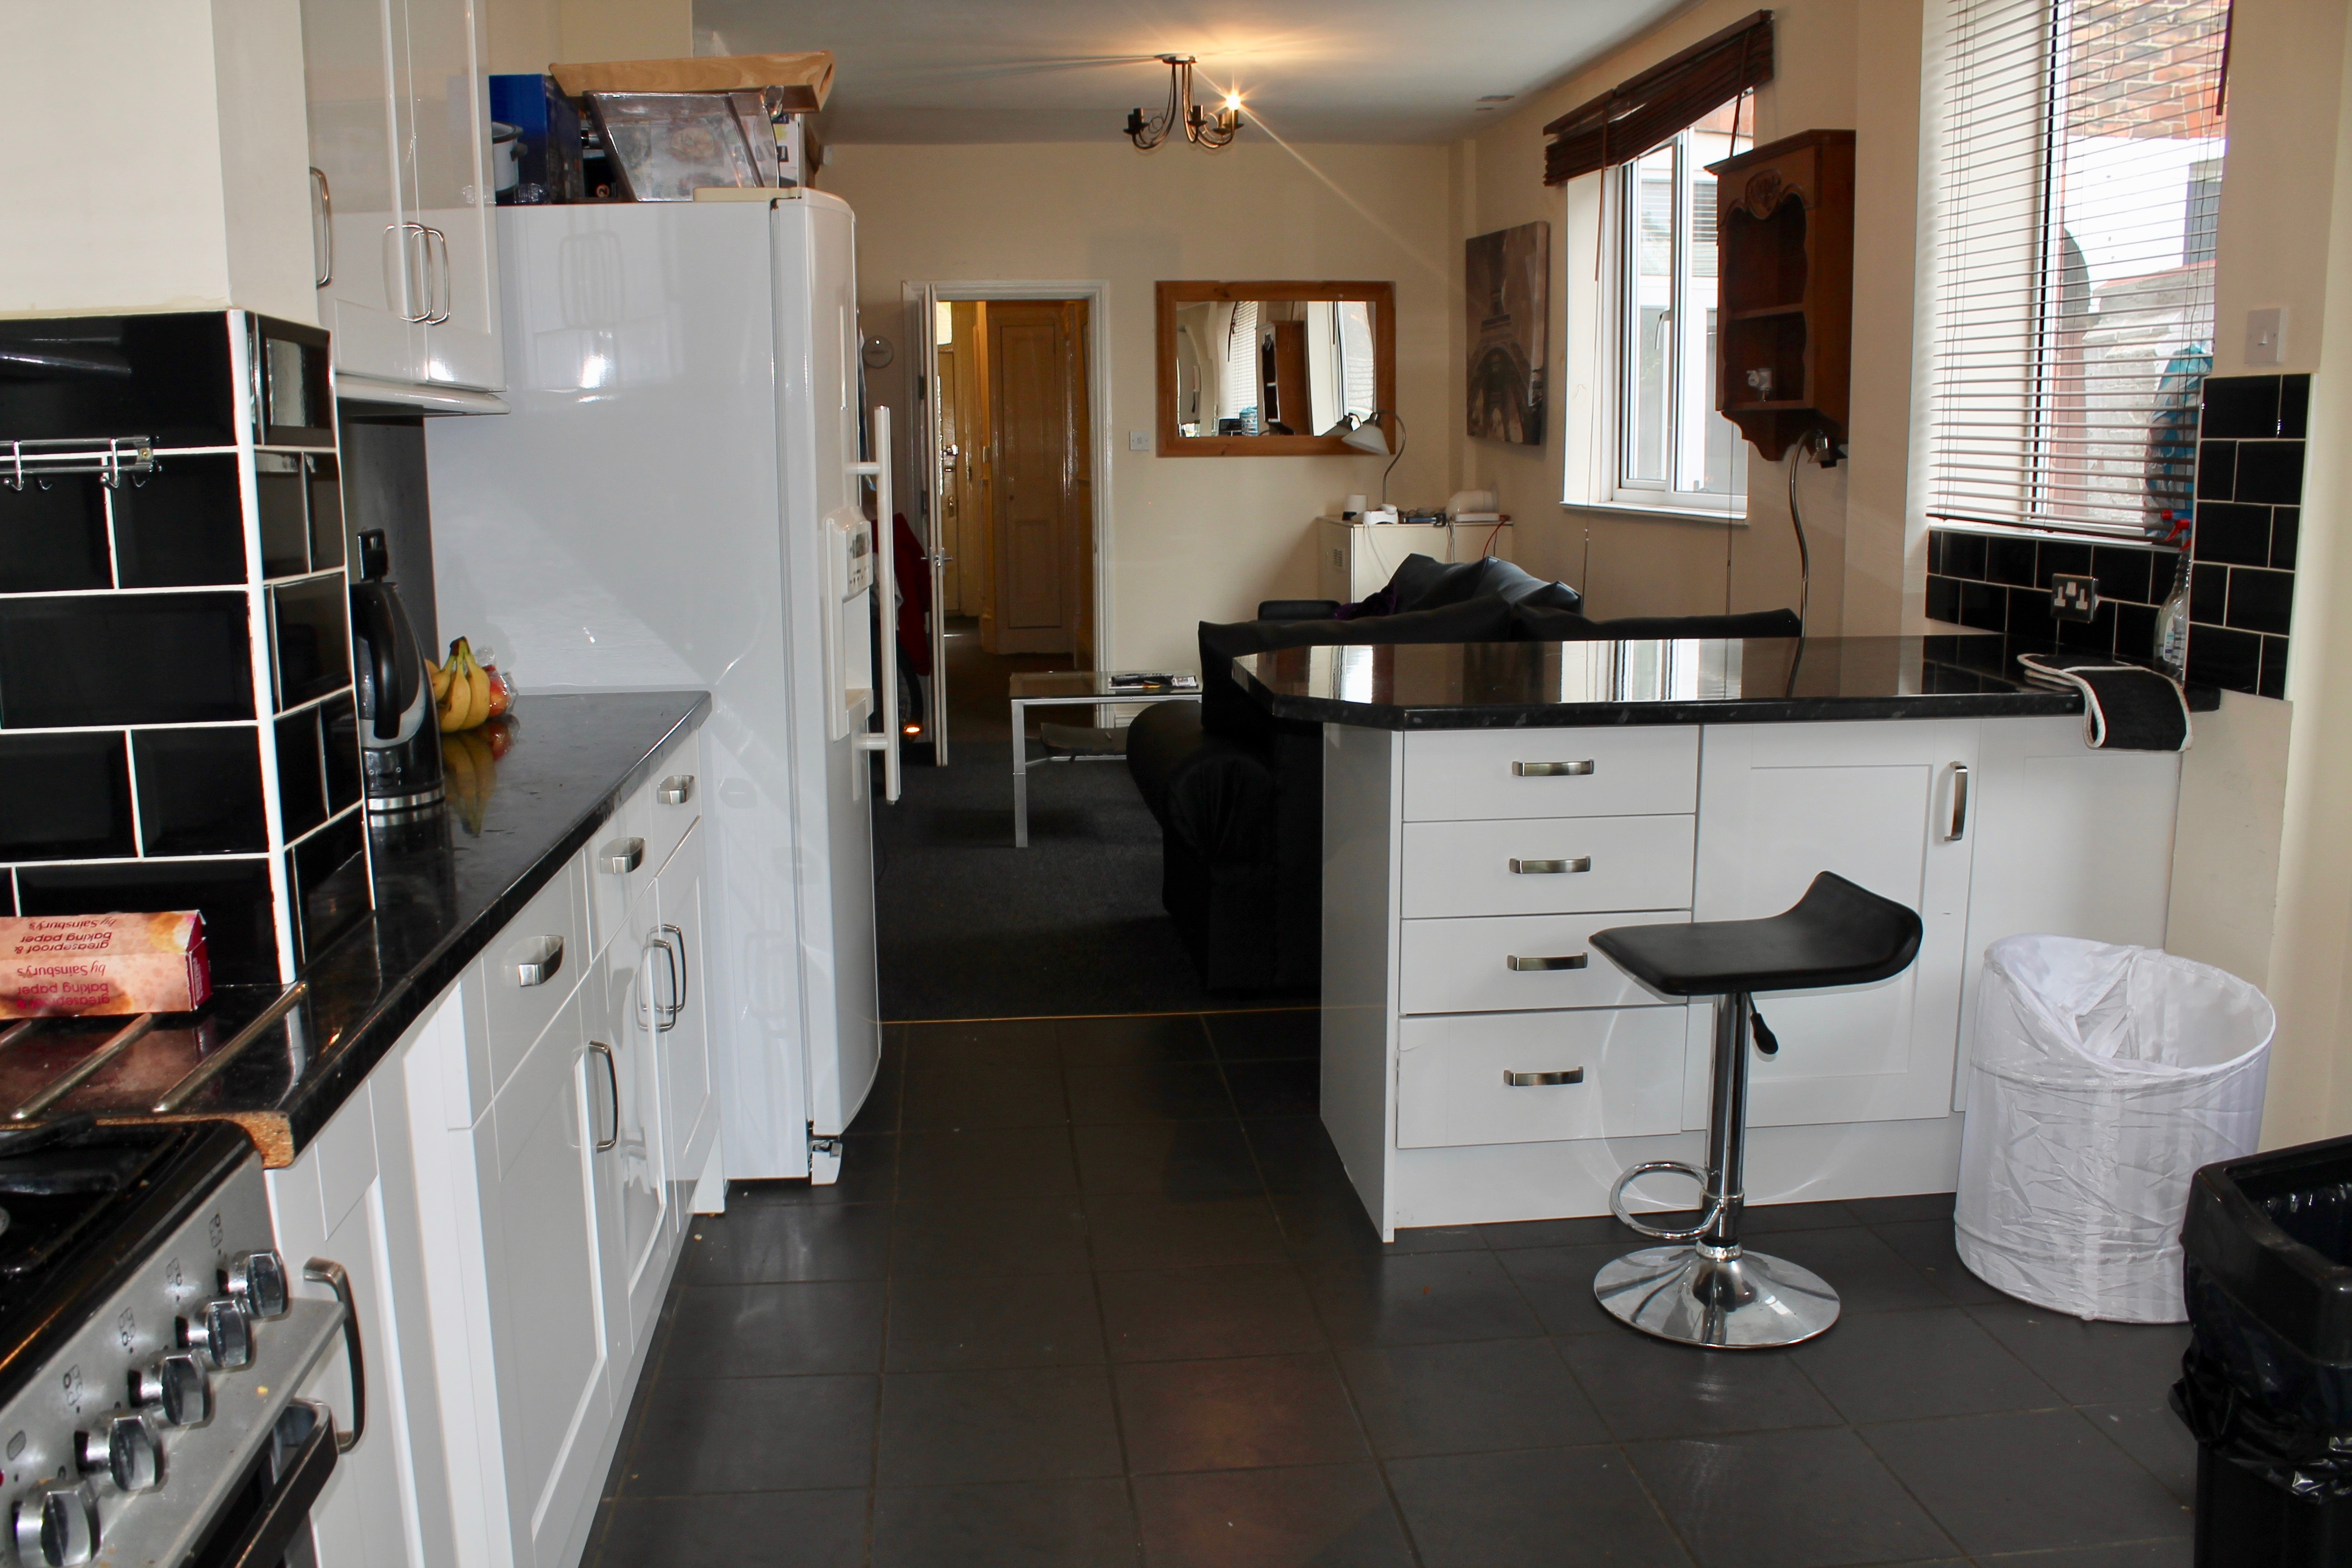 Kitchen in the avenues property which is fully equipped.